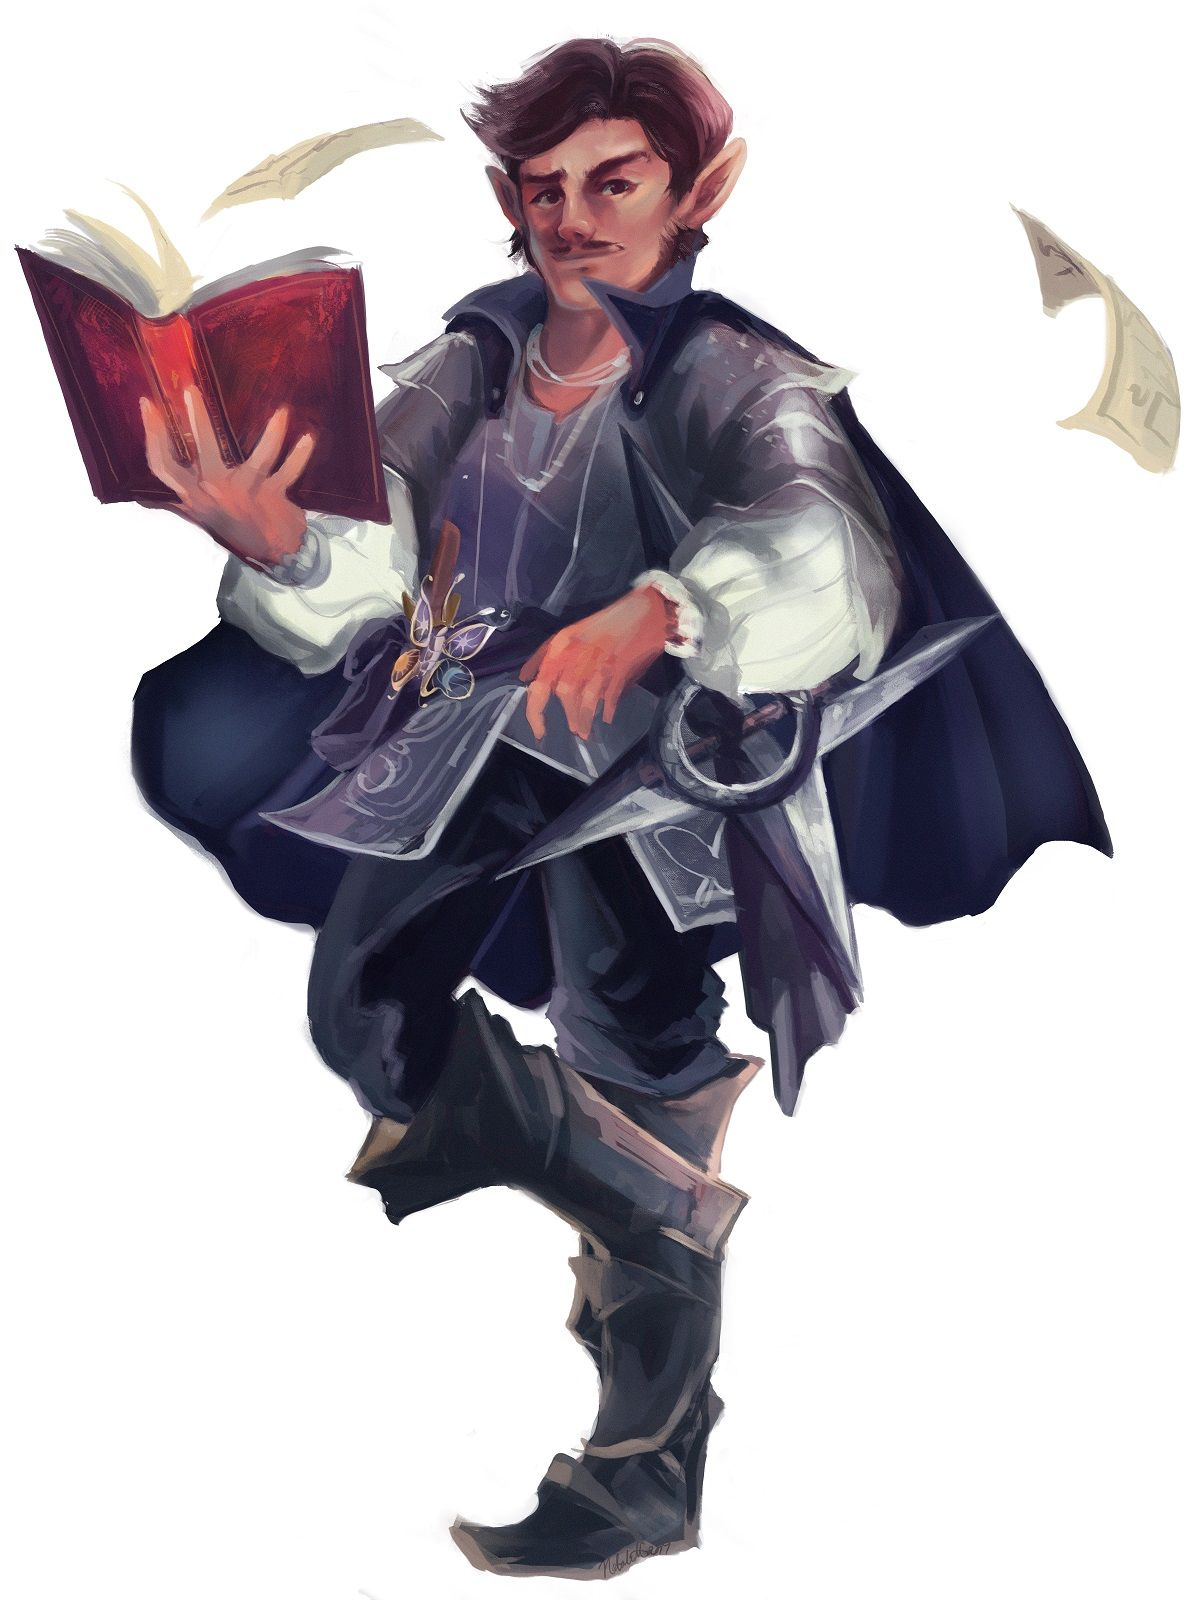 Oc Art Awesome Art Piece Of My Halfling Cleric Check That Holy